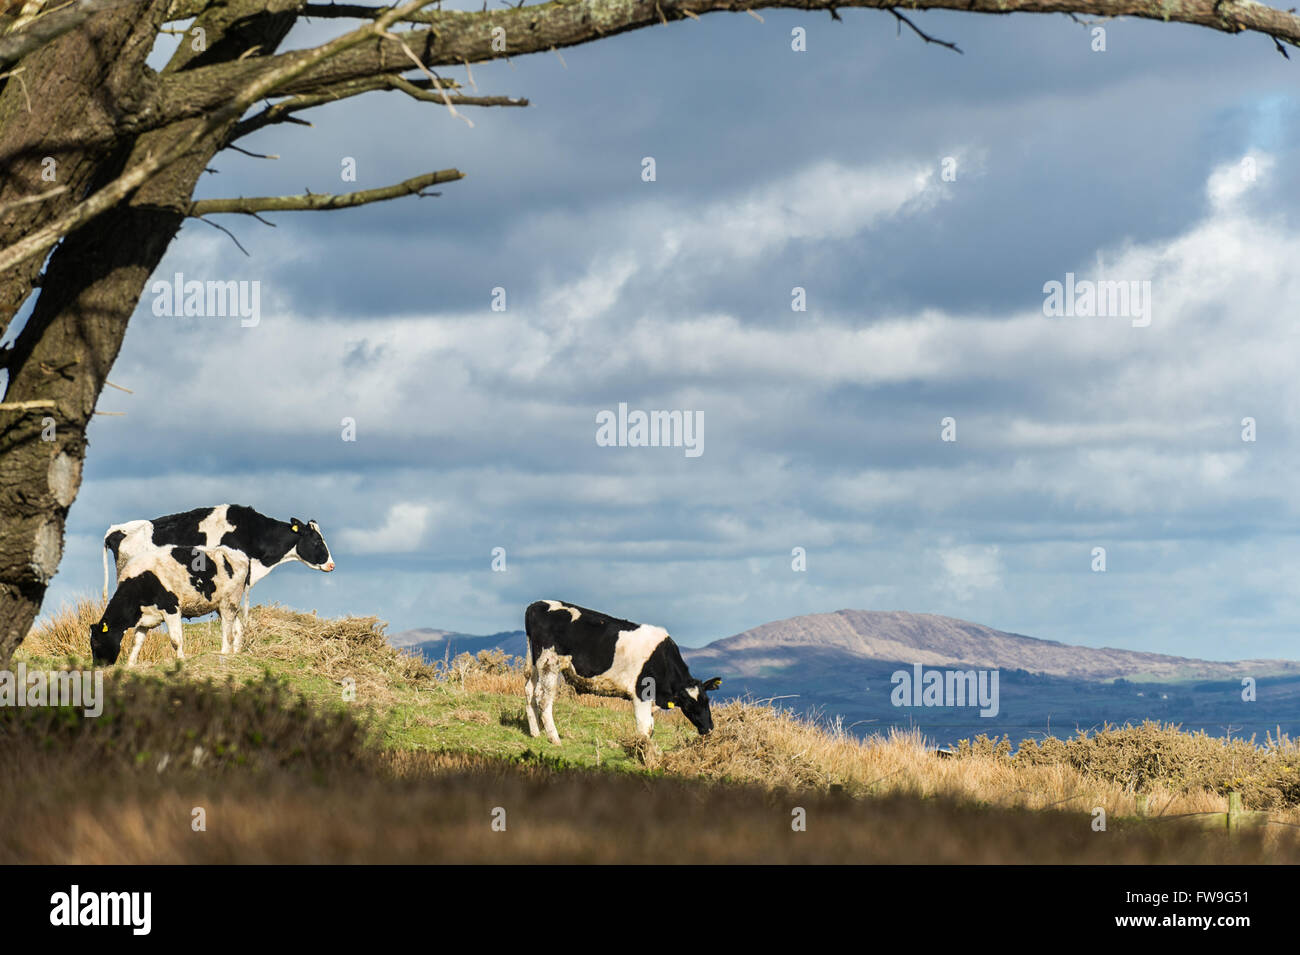 Three cows stand in a field, framed by a tree on the Sheep's Head Way, West Cork, Ireland - Stock Image